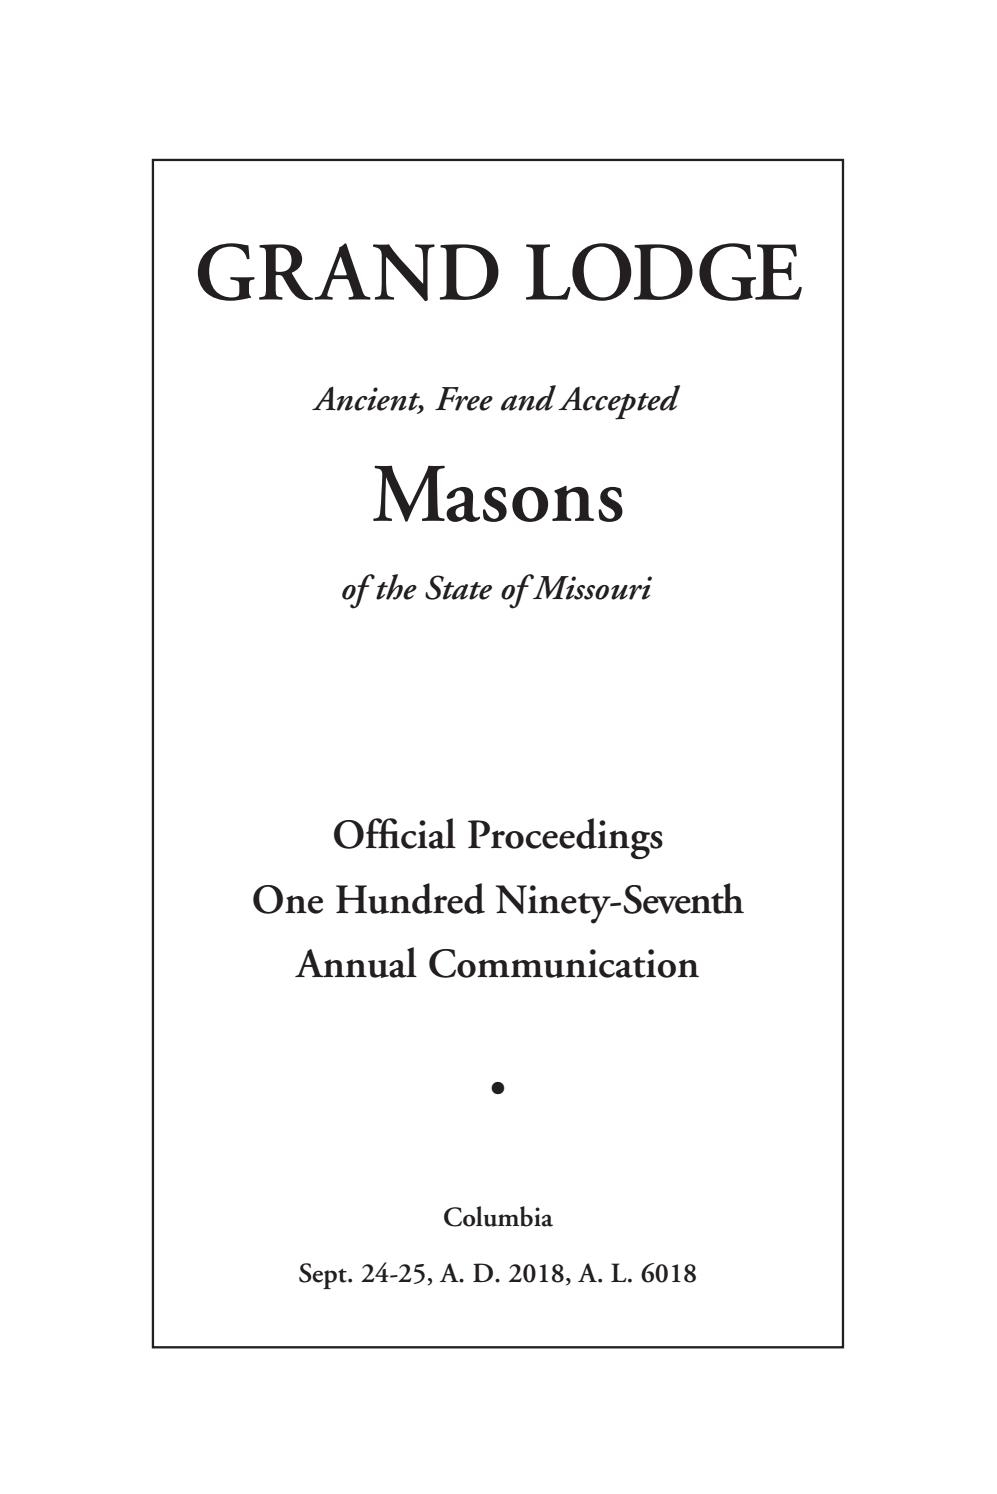 Official Proceedings - Grand Lodge Mo Annual Communication Throughout Las Cruces Public Achools Calendar 2021 20